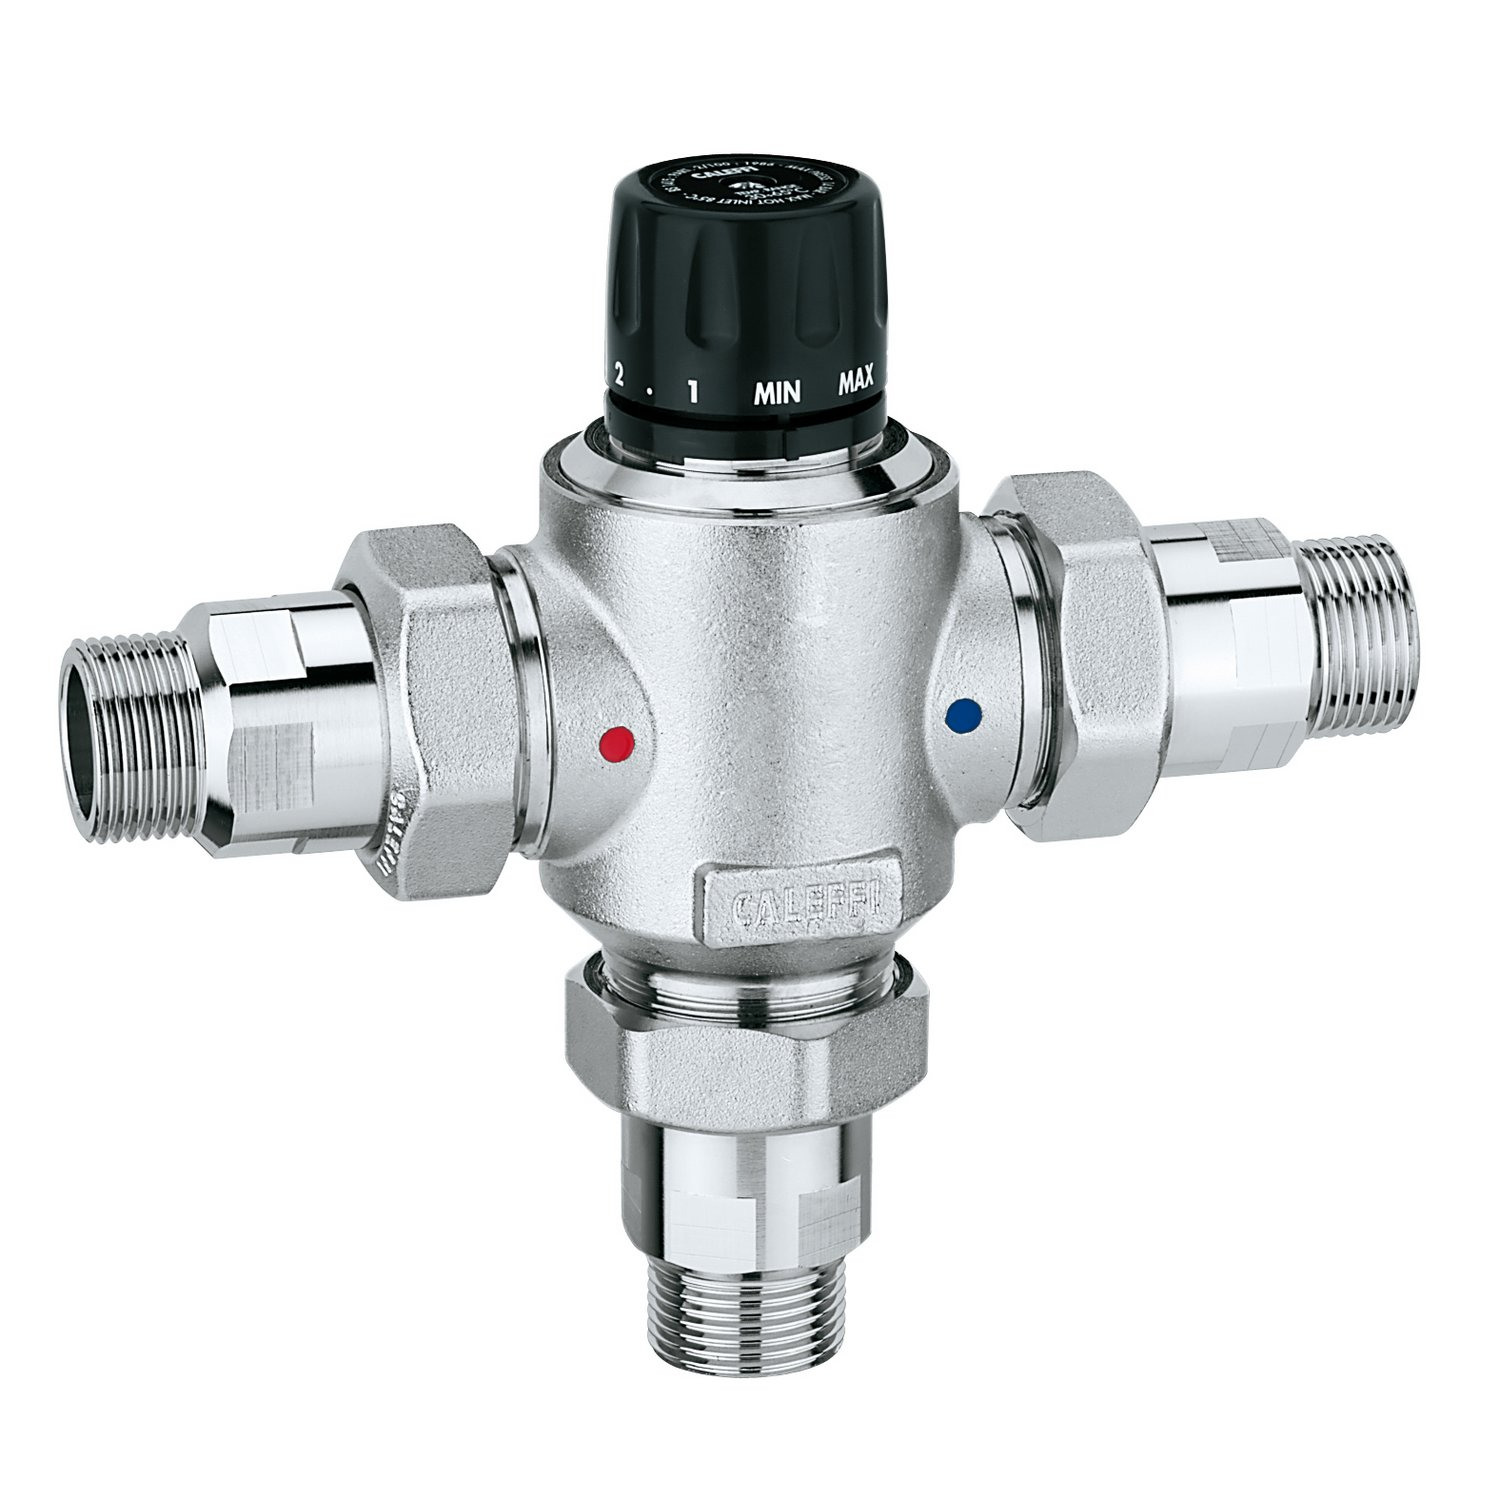 https://www.mepstock.co.uk/admin/images/MIXCAL MIXPRO - ART 5230 WITH COMPRESSION ENDS (INC. CHECK VALVES) 1.jpg